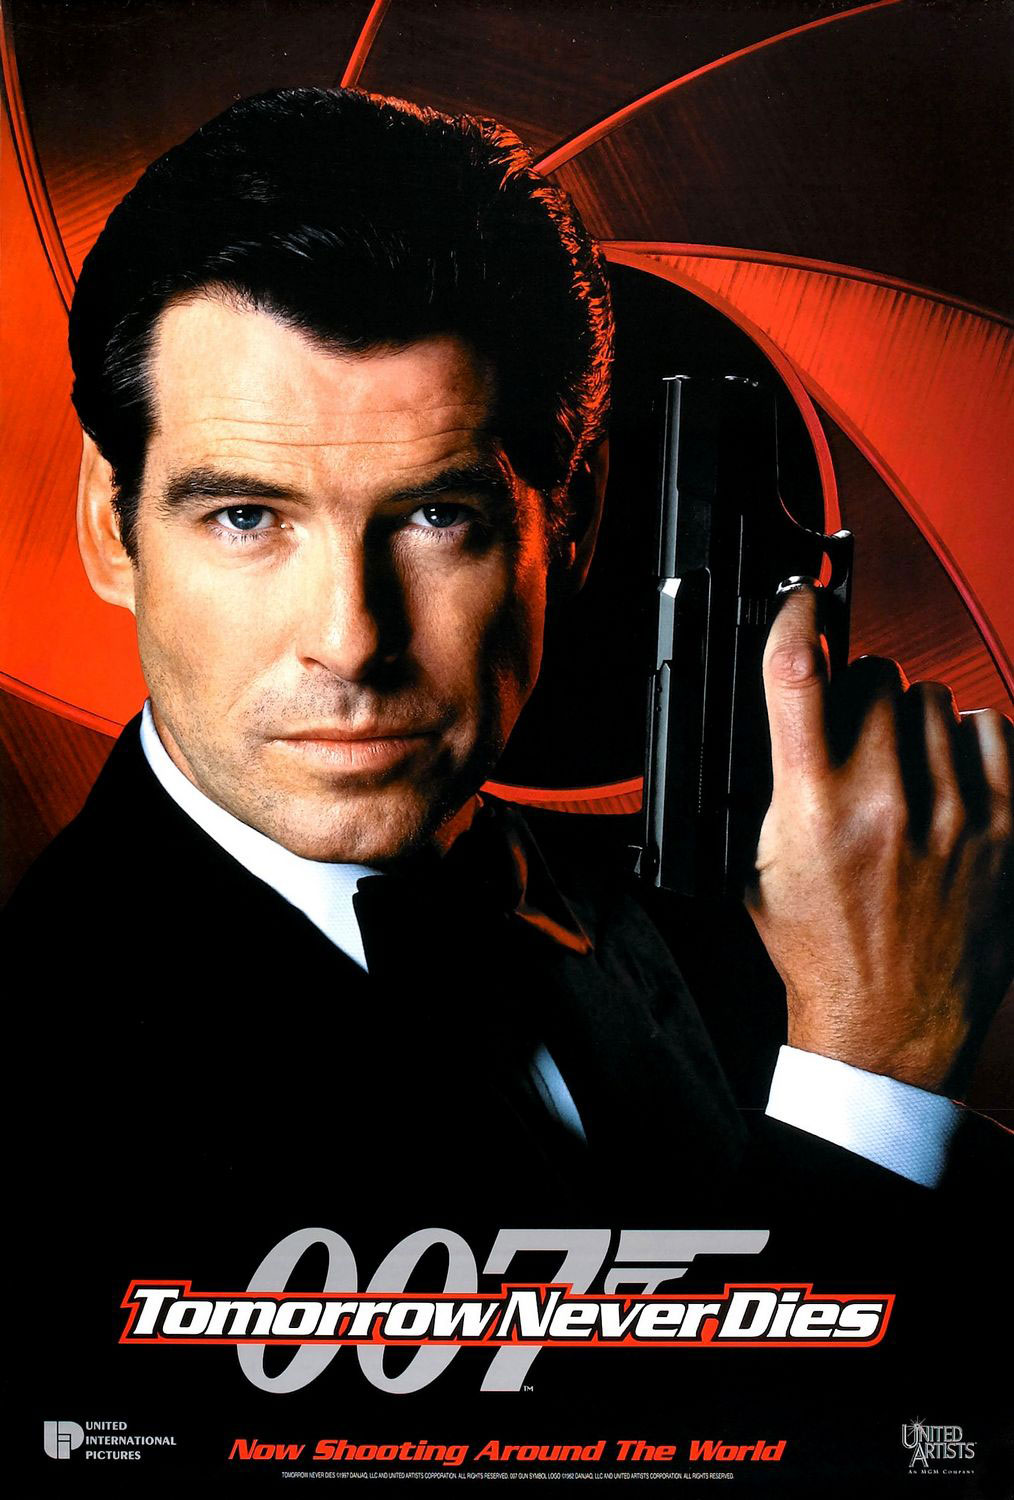 Tomorrow Never Dies (1997) movie poster #2 - SciFi-Movies